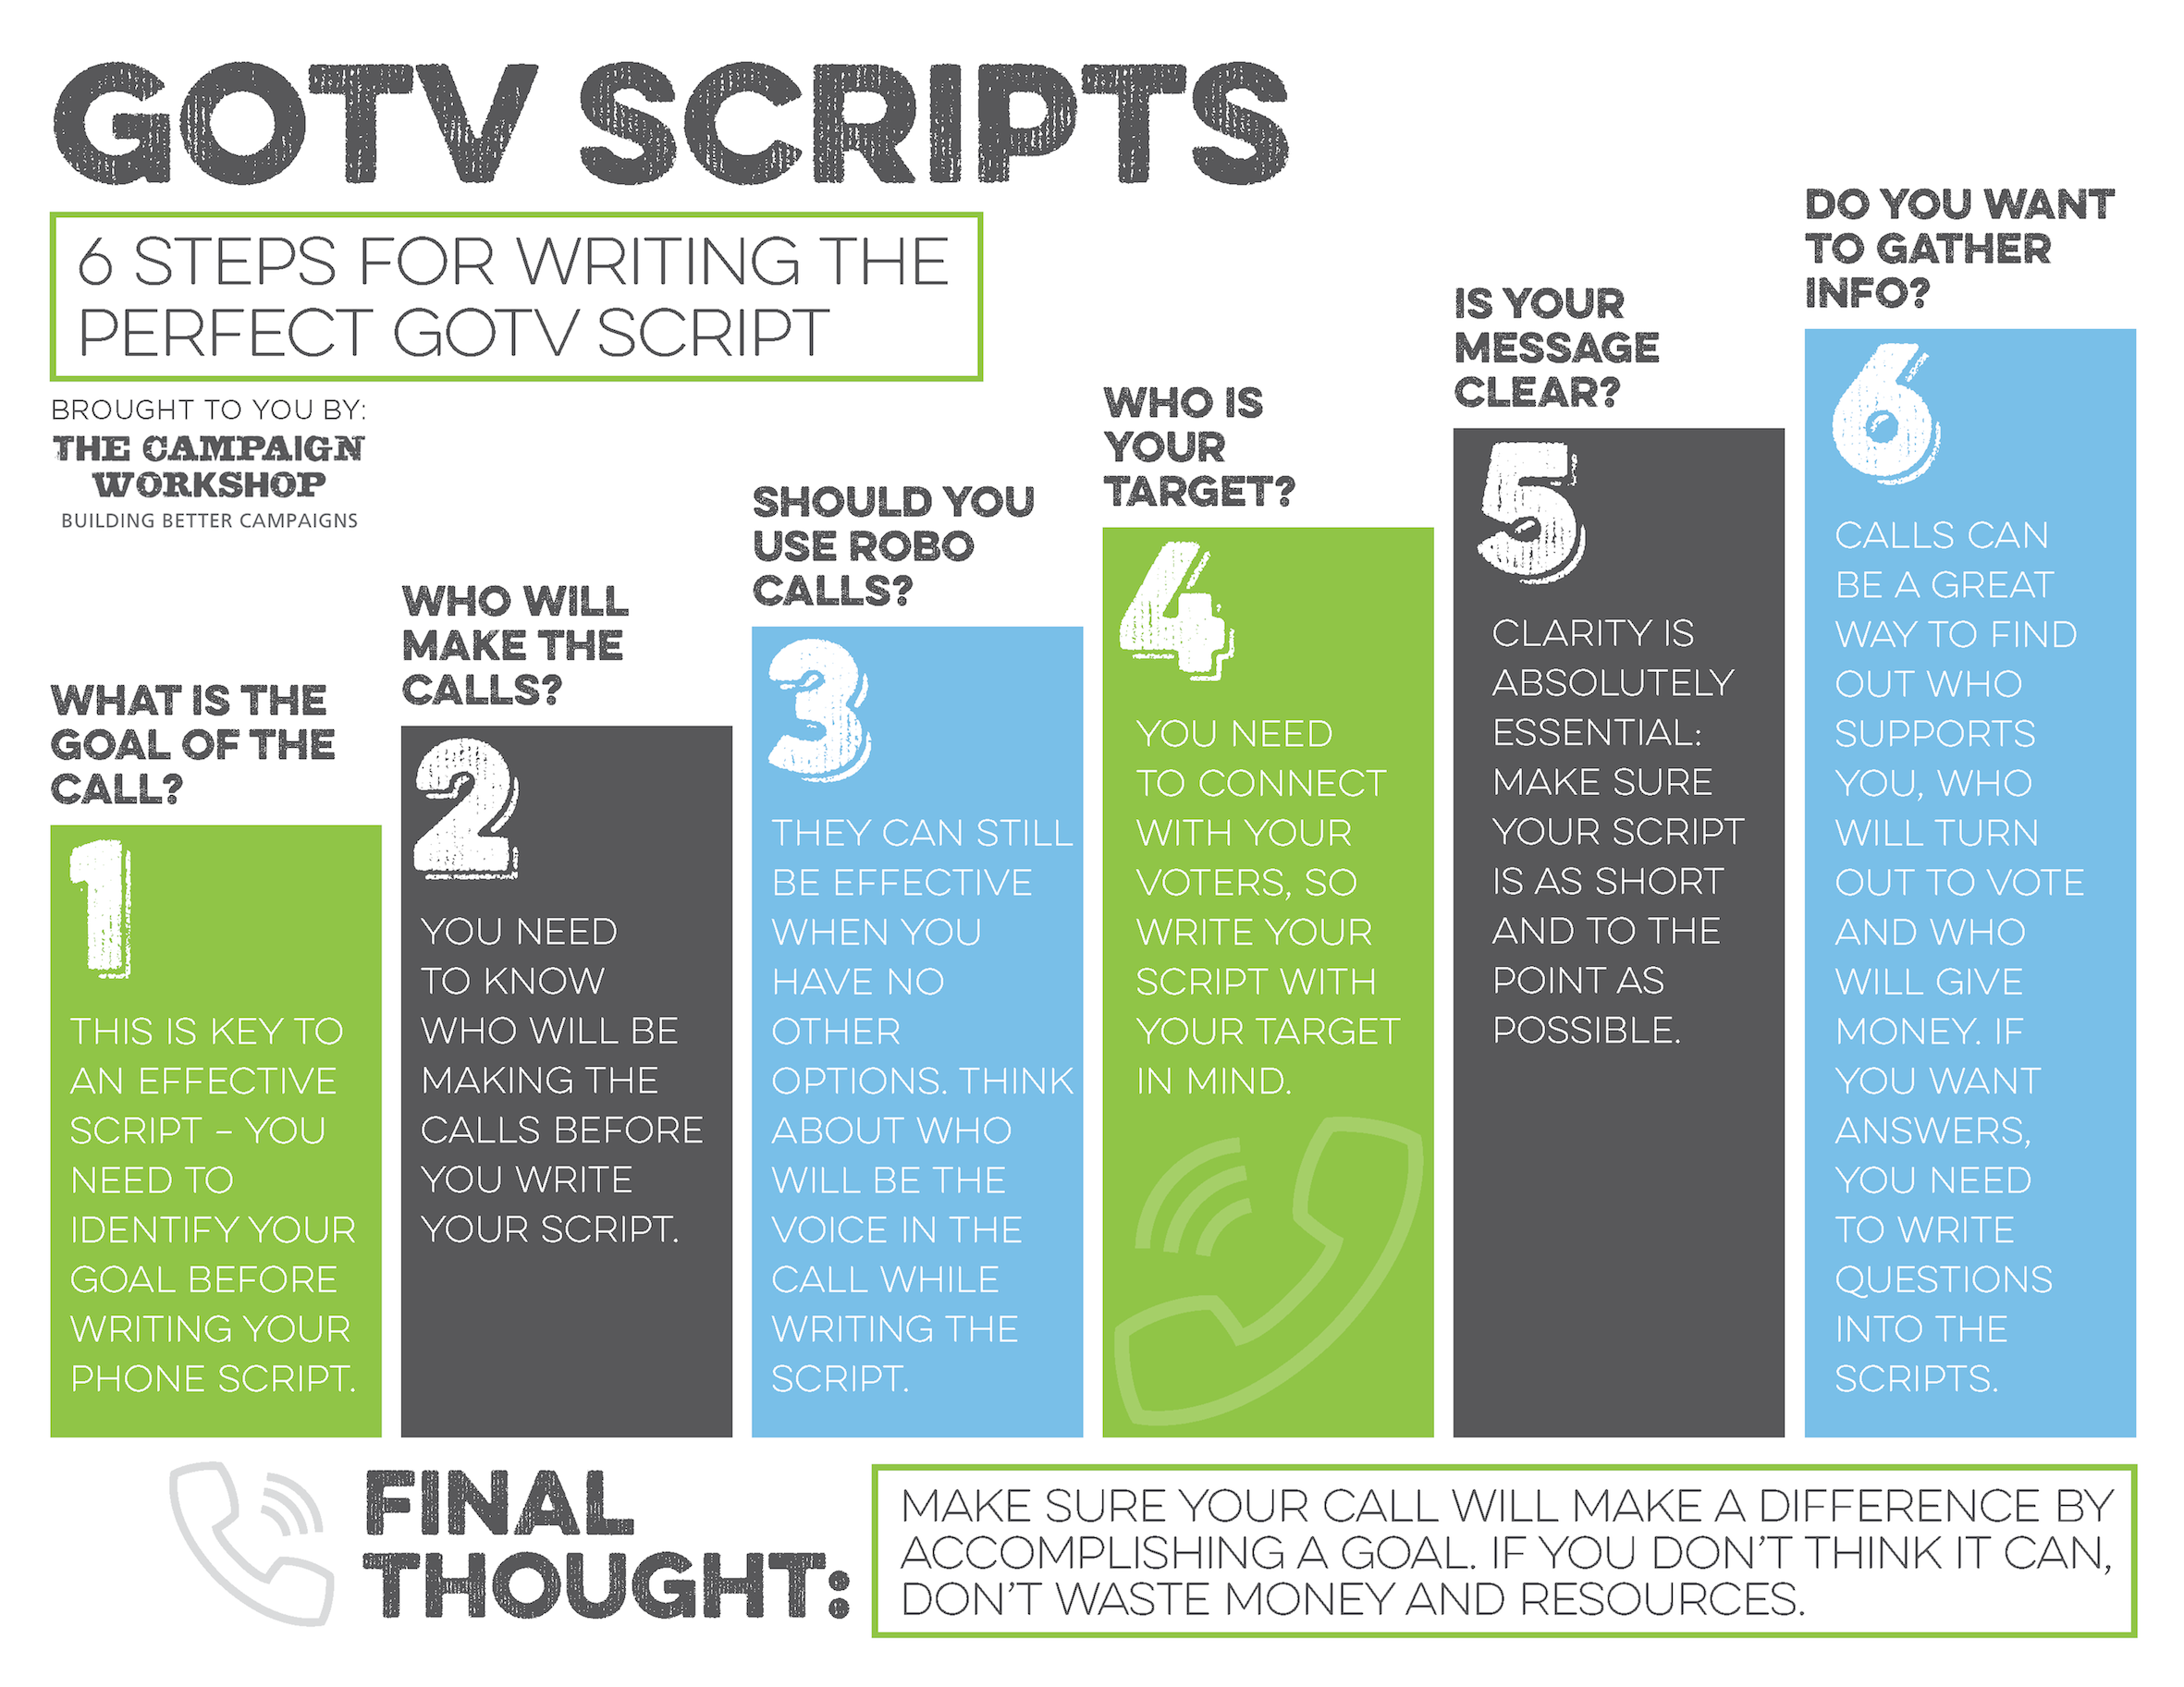 Look for GOTV Scripts? Here is a Handy Infographic to help draft get out the vote scripts.